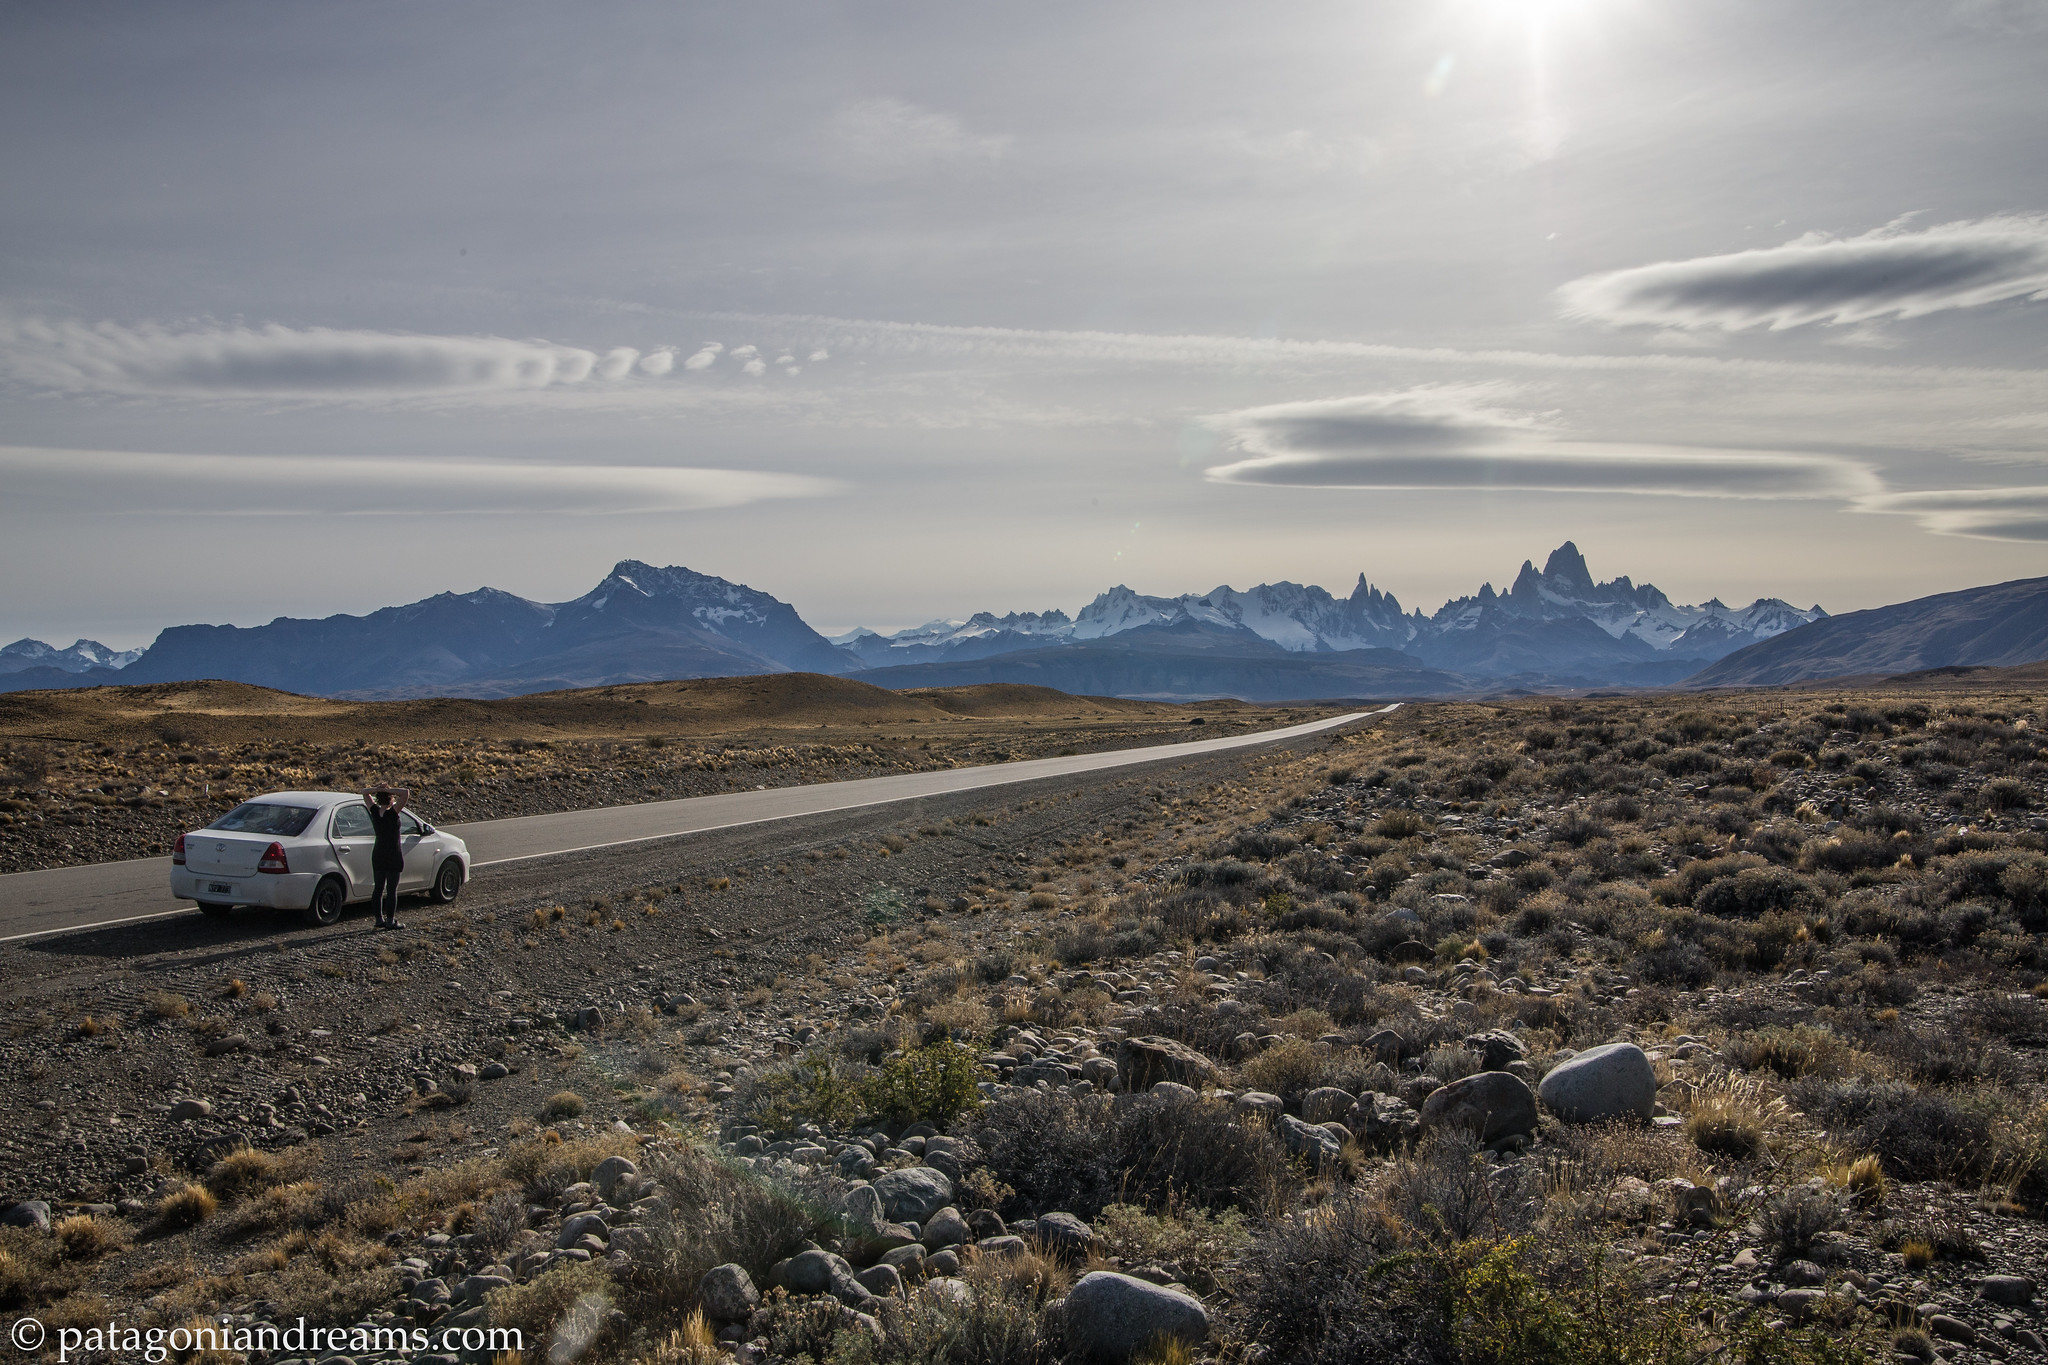 Approaching the Fitz Roy massif from the Ruta 40, Santa Cruz Province, Patagonia, Argentina.